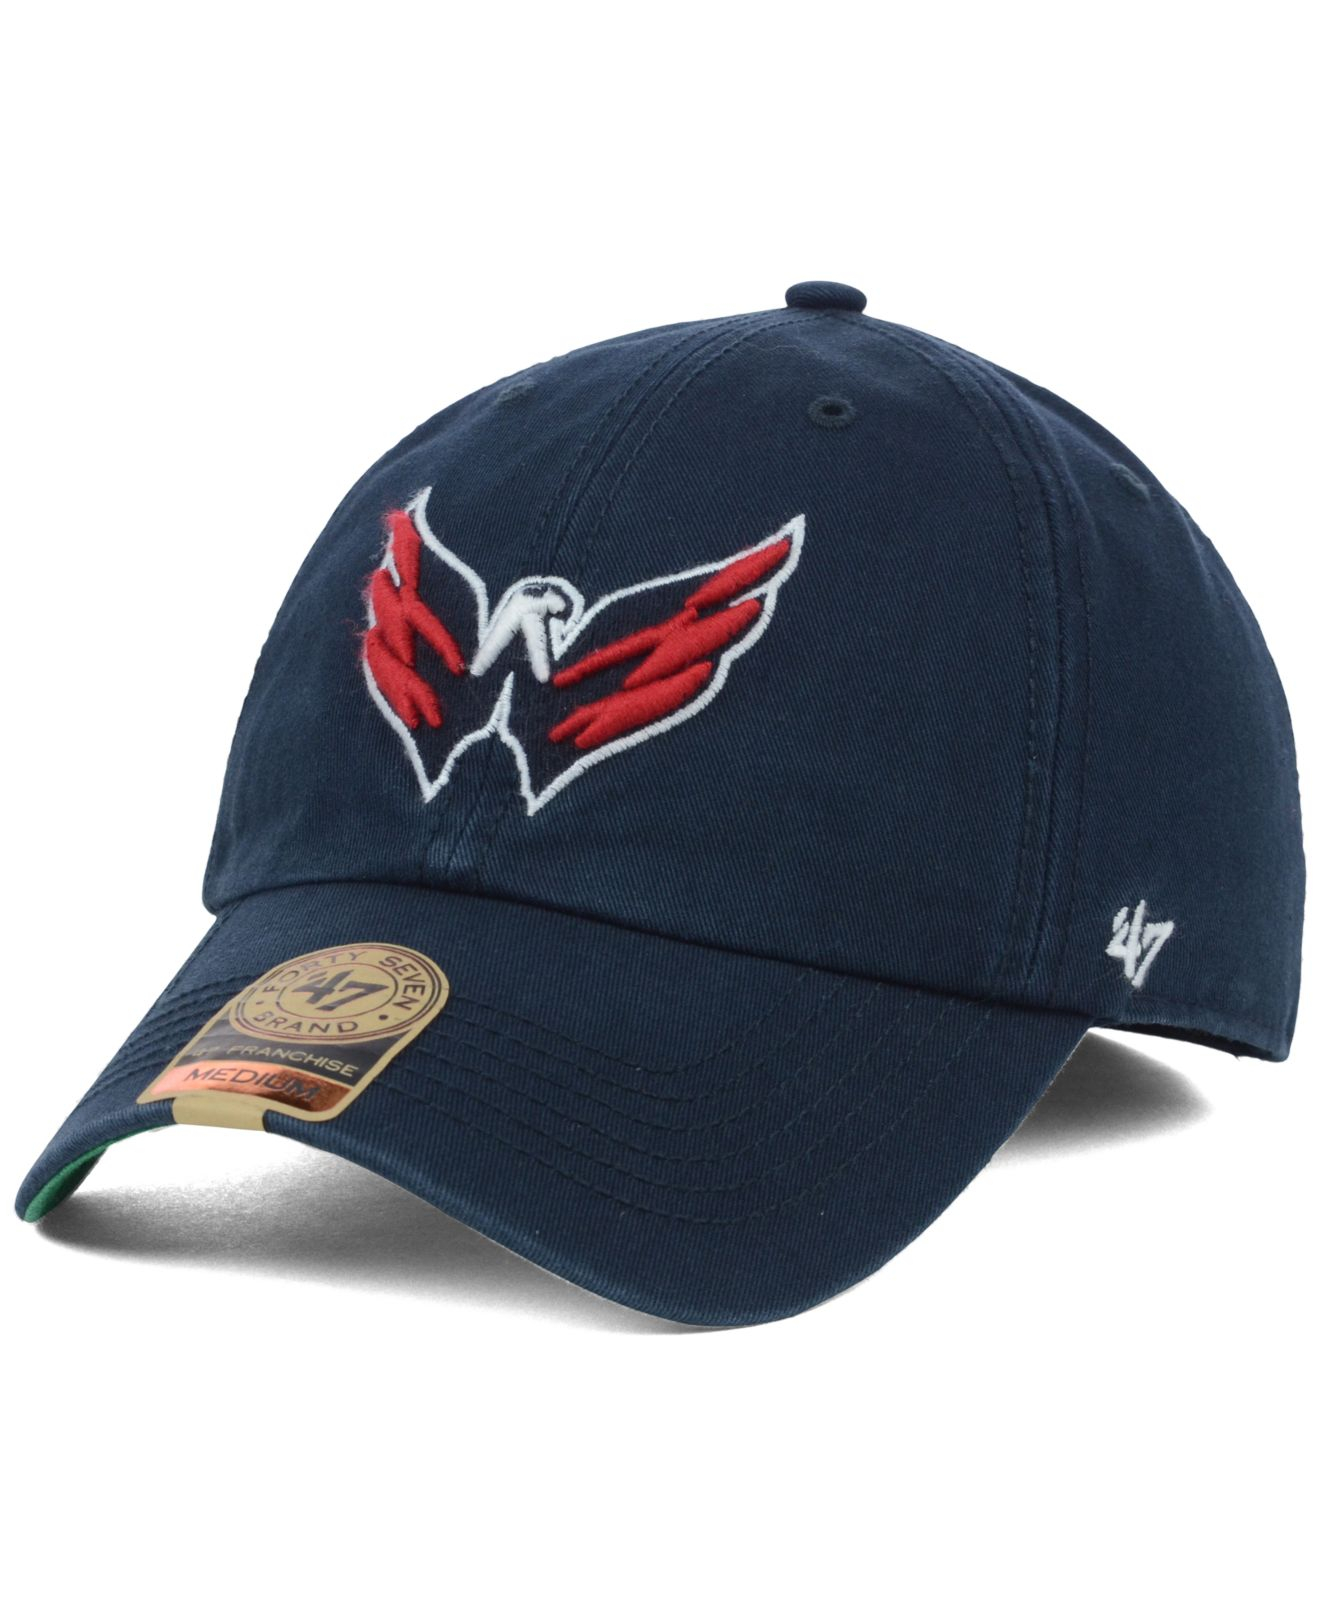 566fe652137 ... cheap low cost lyst 47 brand washington capitals franchise cap in blue  for men 49783 49463